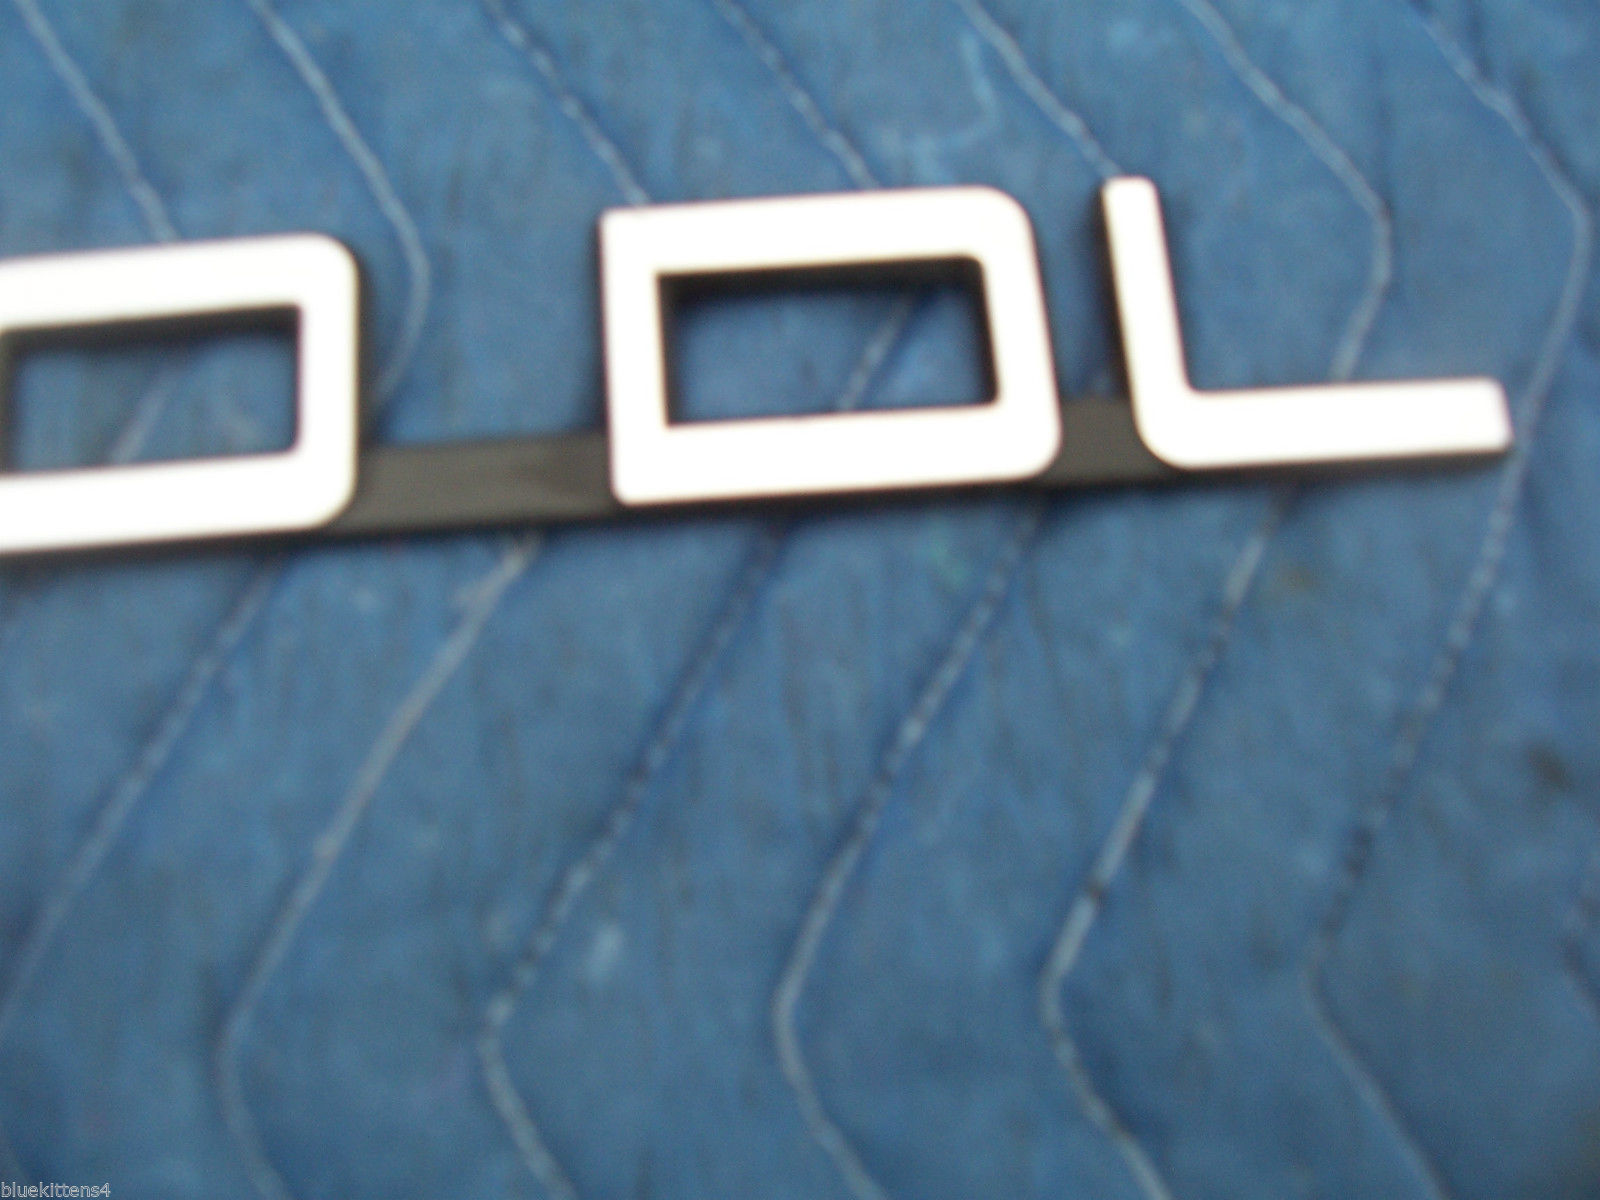 240 DL USED TRUNK TRIM EMBLEM 1993 1992 1991 1990 ORIGINAL VOLVO ORNAMENT